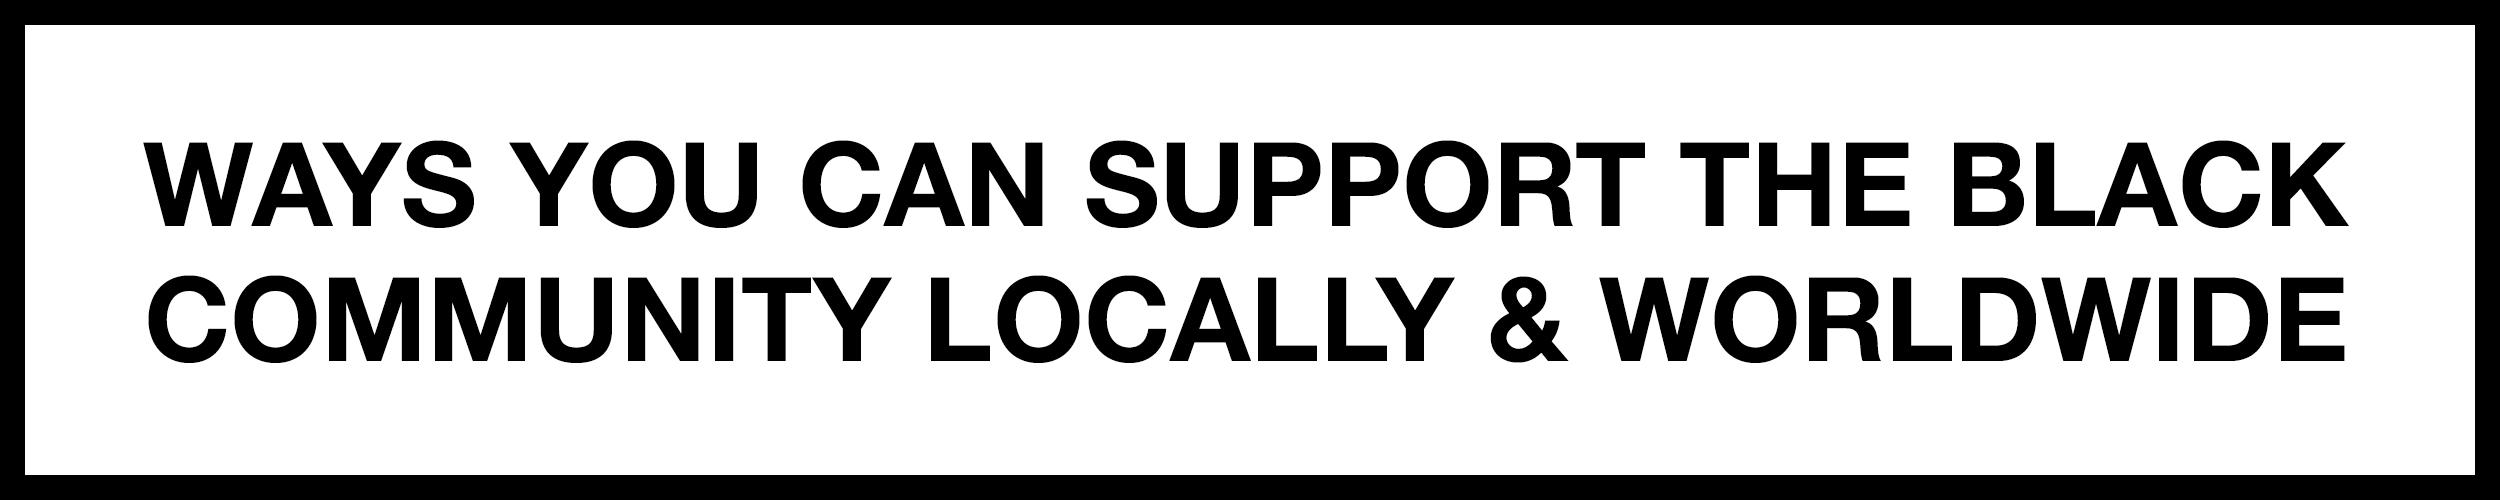 support-the-black-community-banner